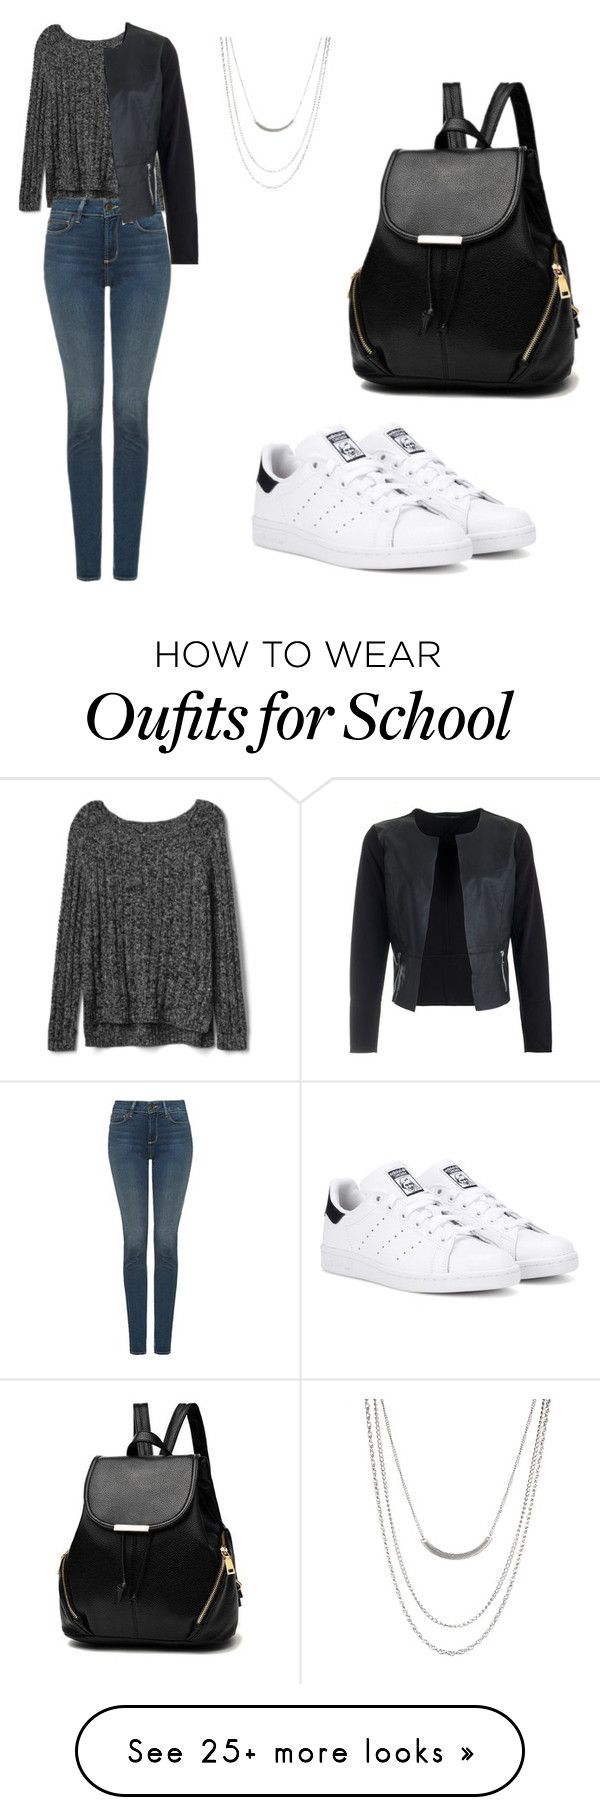 """school day"" by alena-654 on Polyvore featuring Gap, NYDJ, ASOS and adidas Originals"